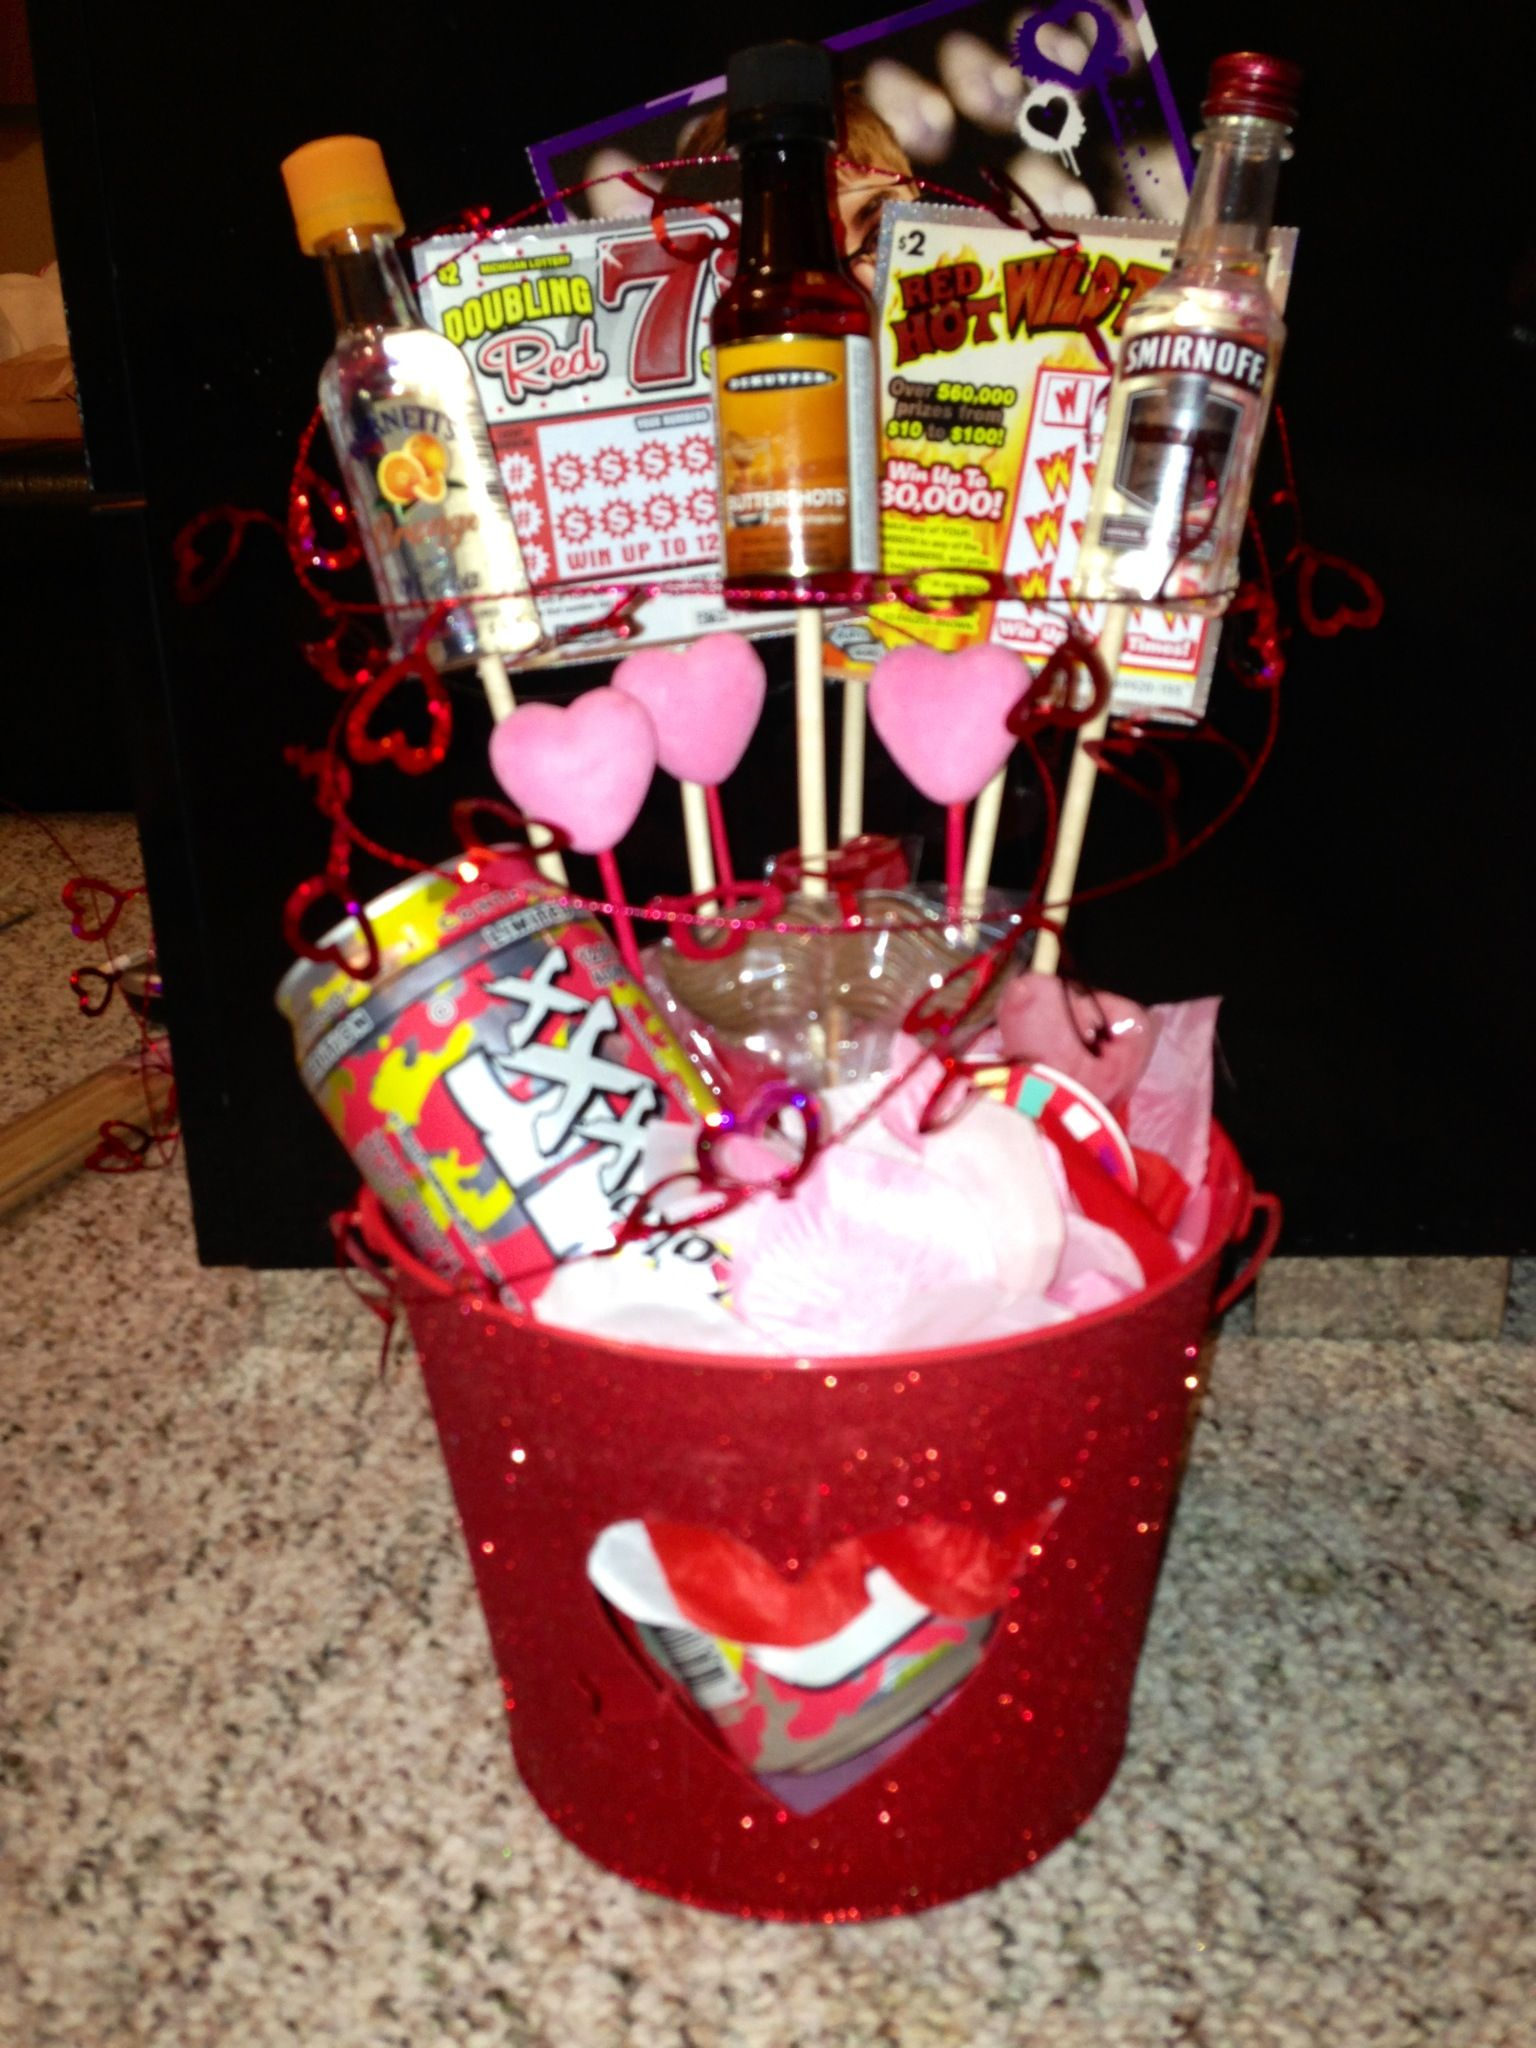 Valentines Gift For Guys Alcohol Lottery And Chocolate What More Could They Want Valentine Gifts Holiday Crafts Gifts Mens Valentines Gifts